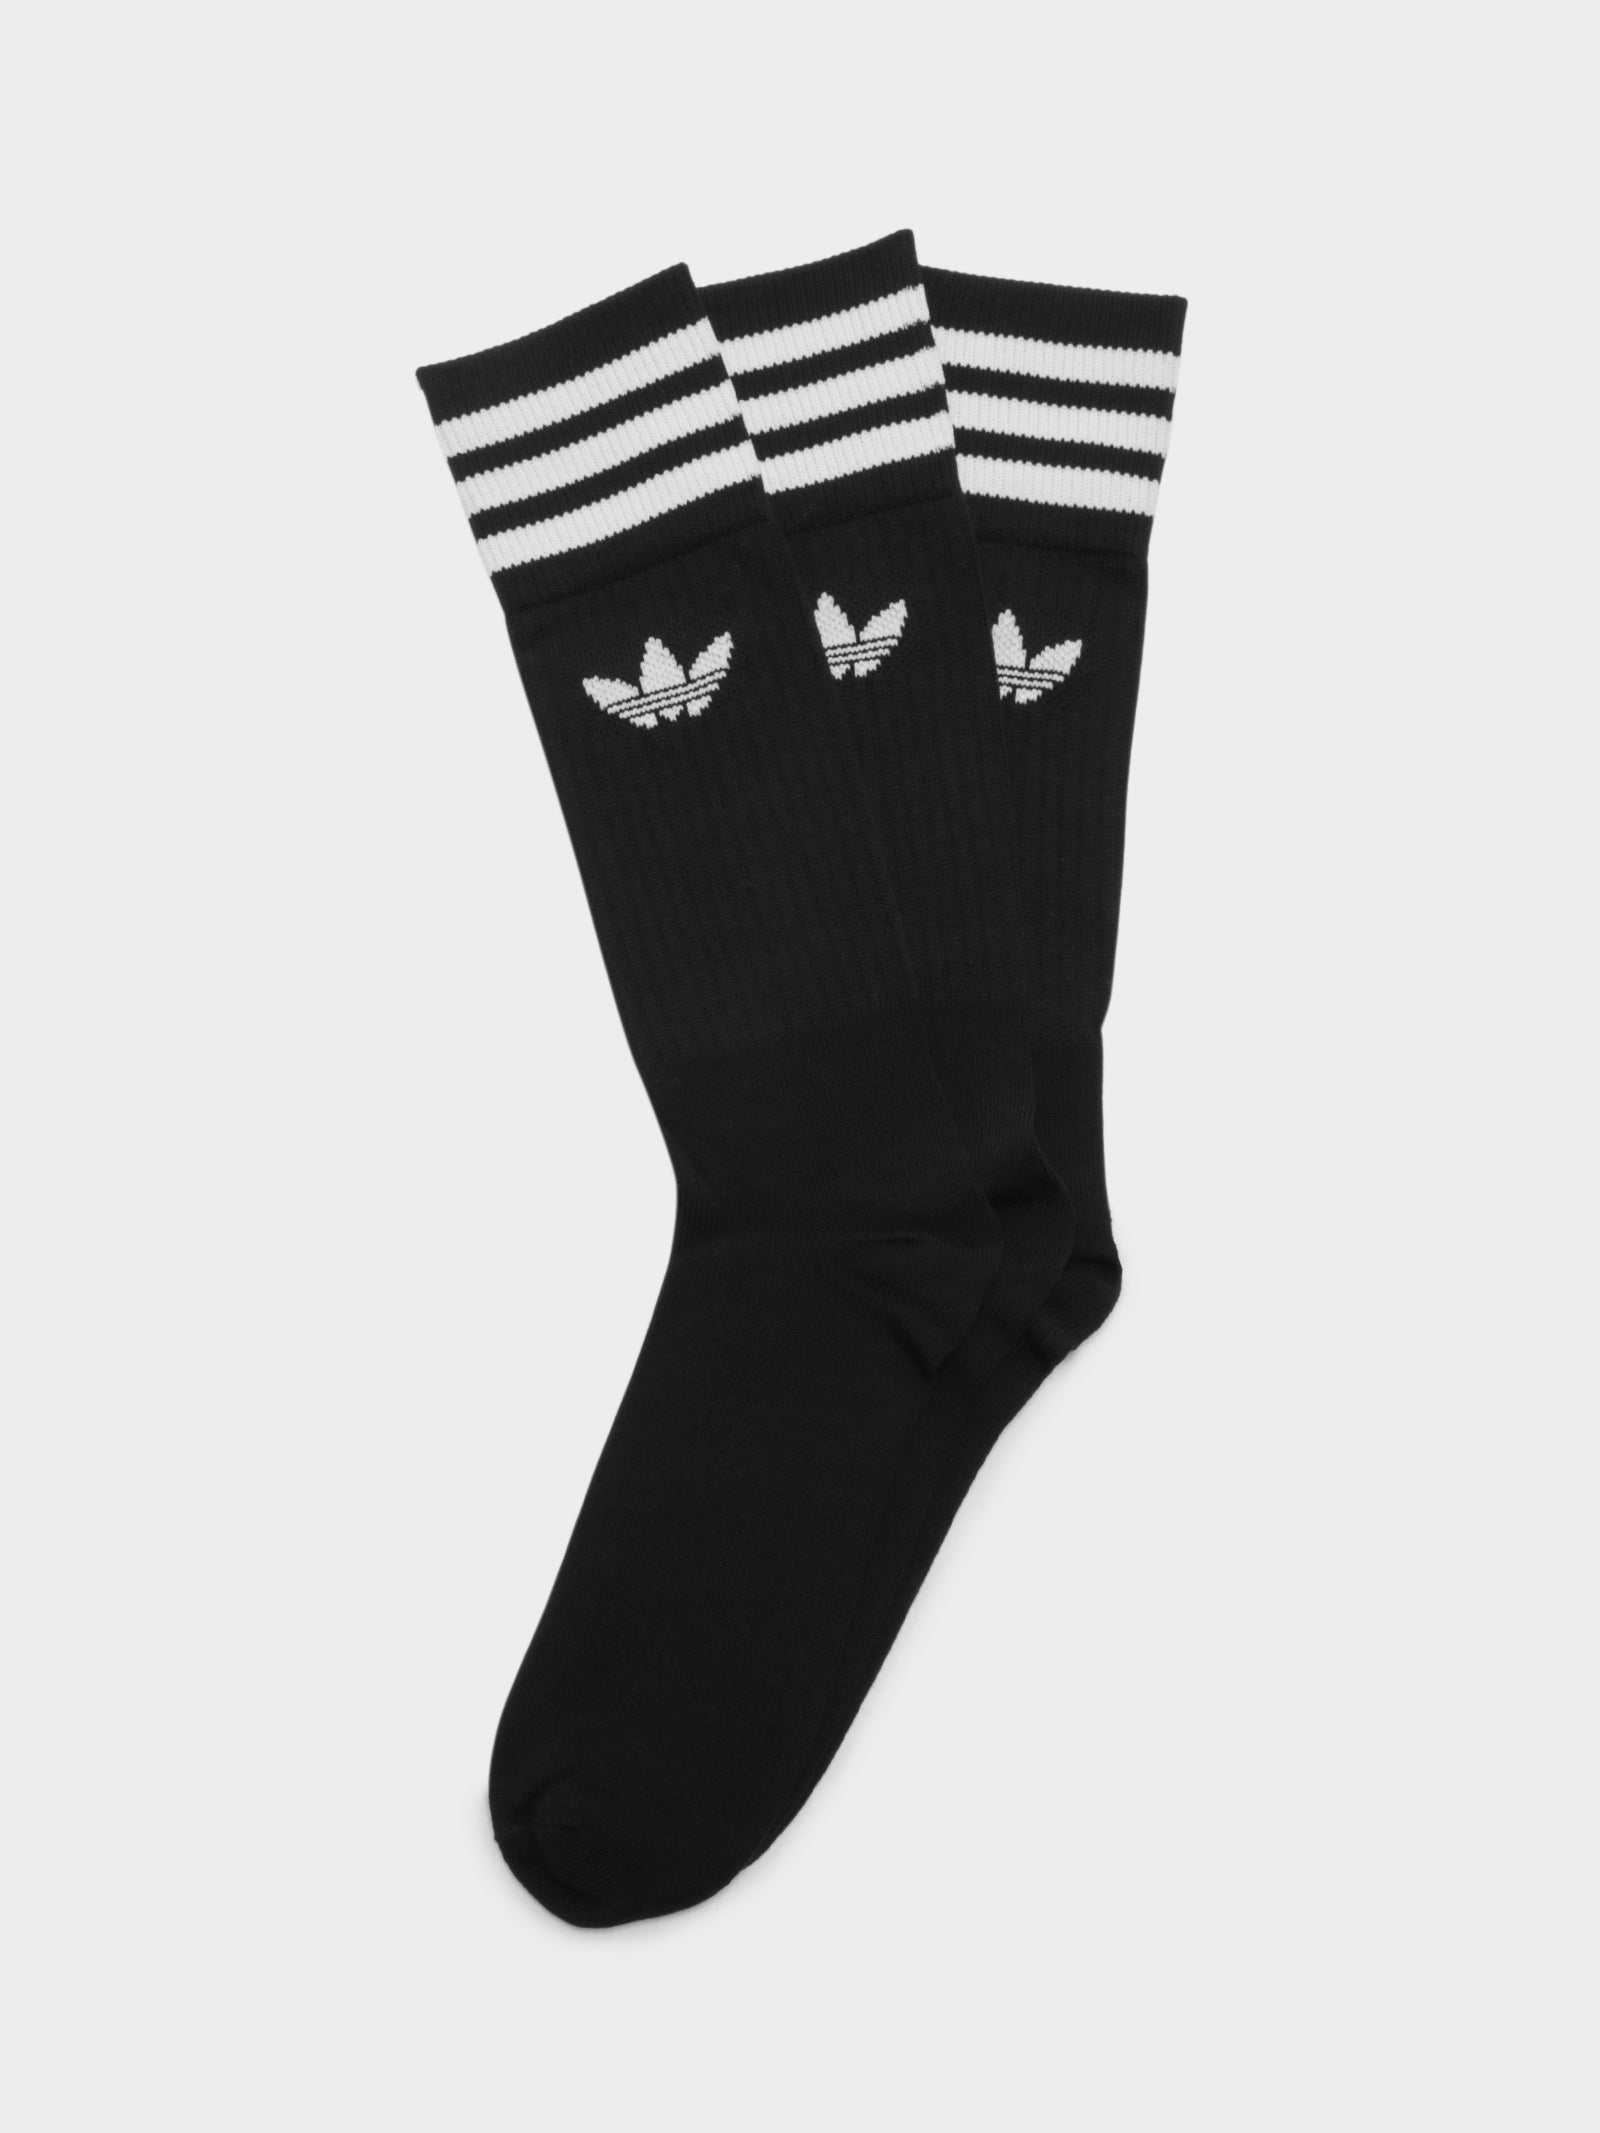 3 Pairs of Solid Crew Socks in Black